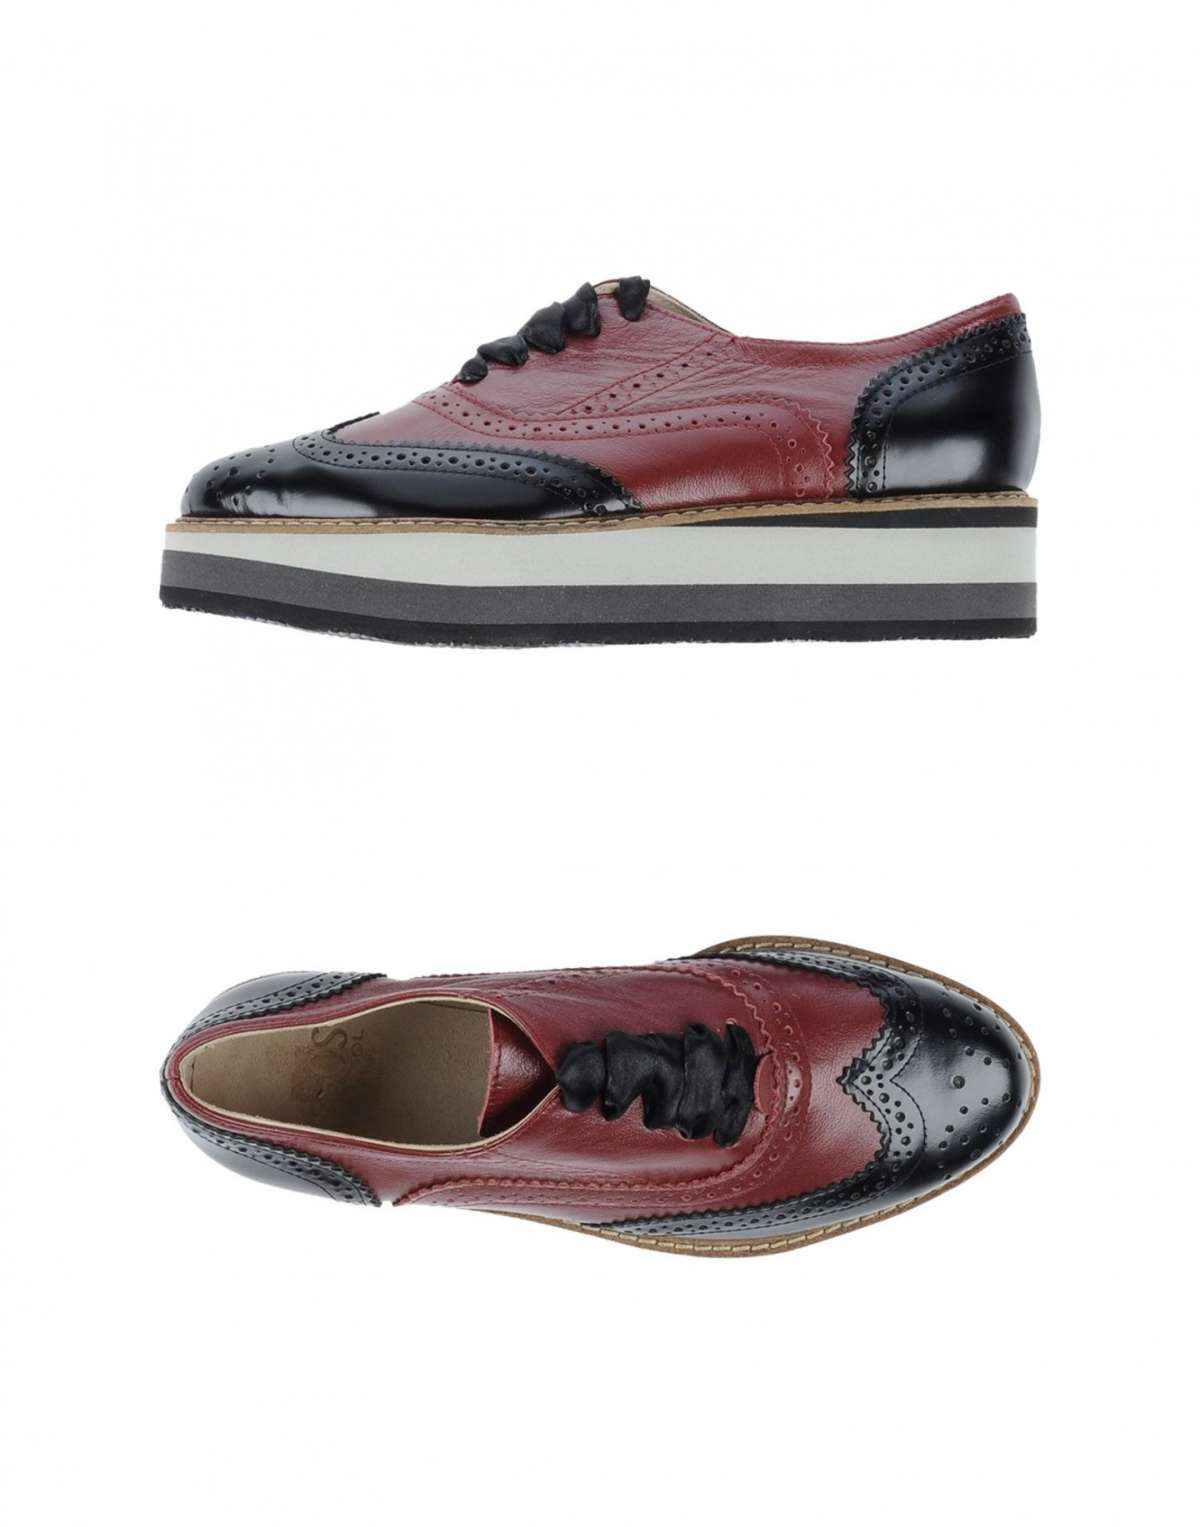 Hego's Liverpool creepers bicolor